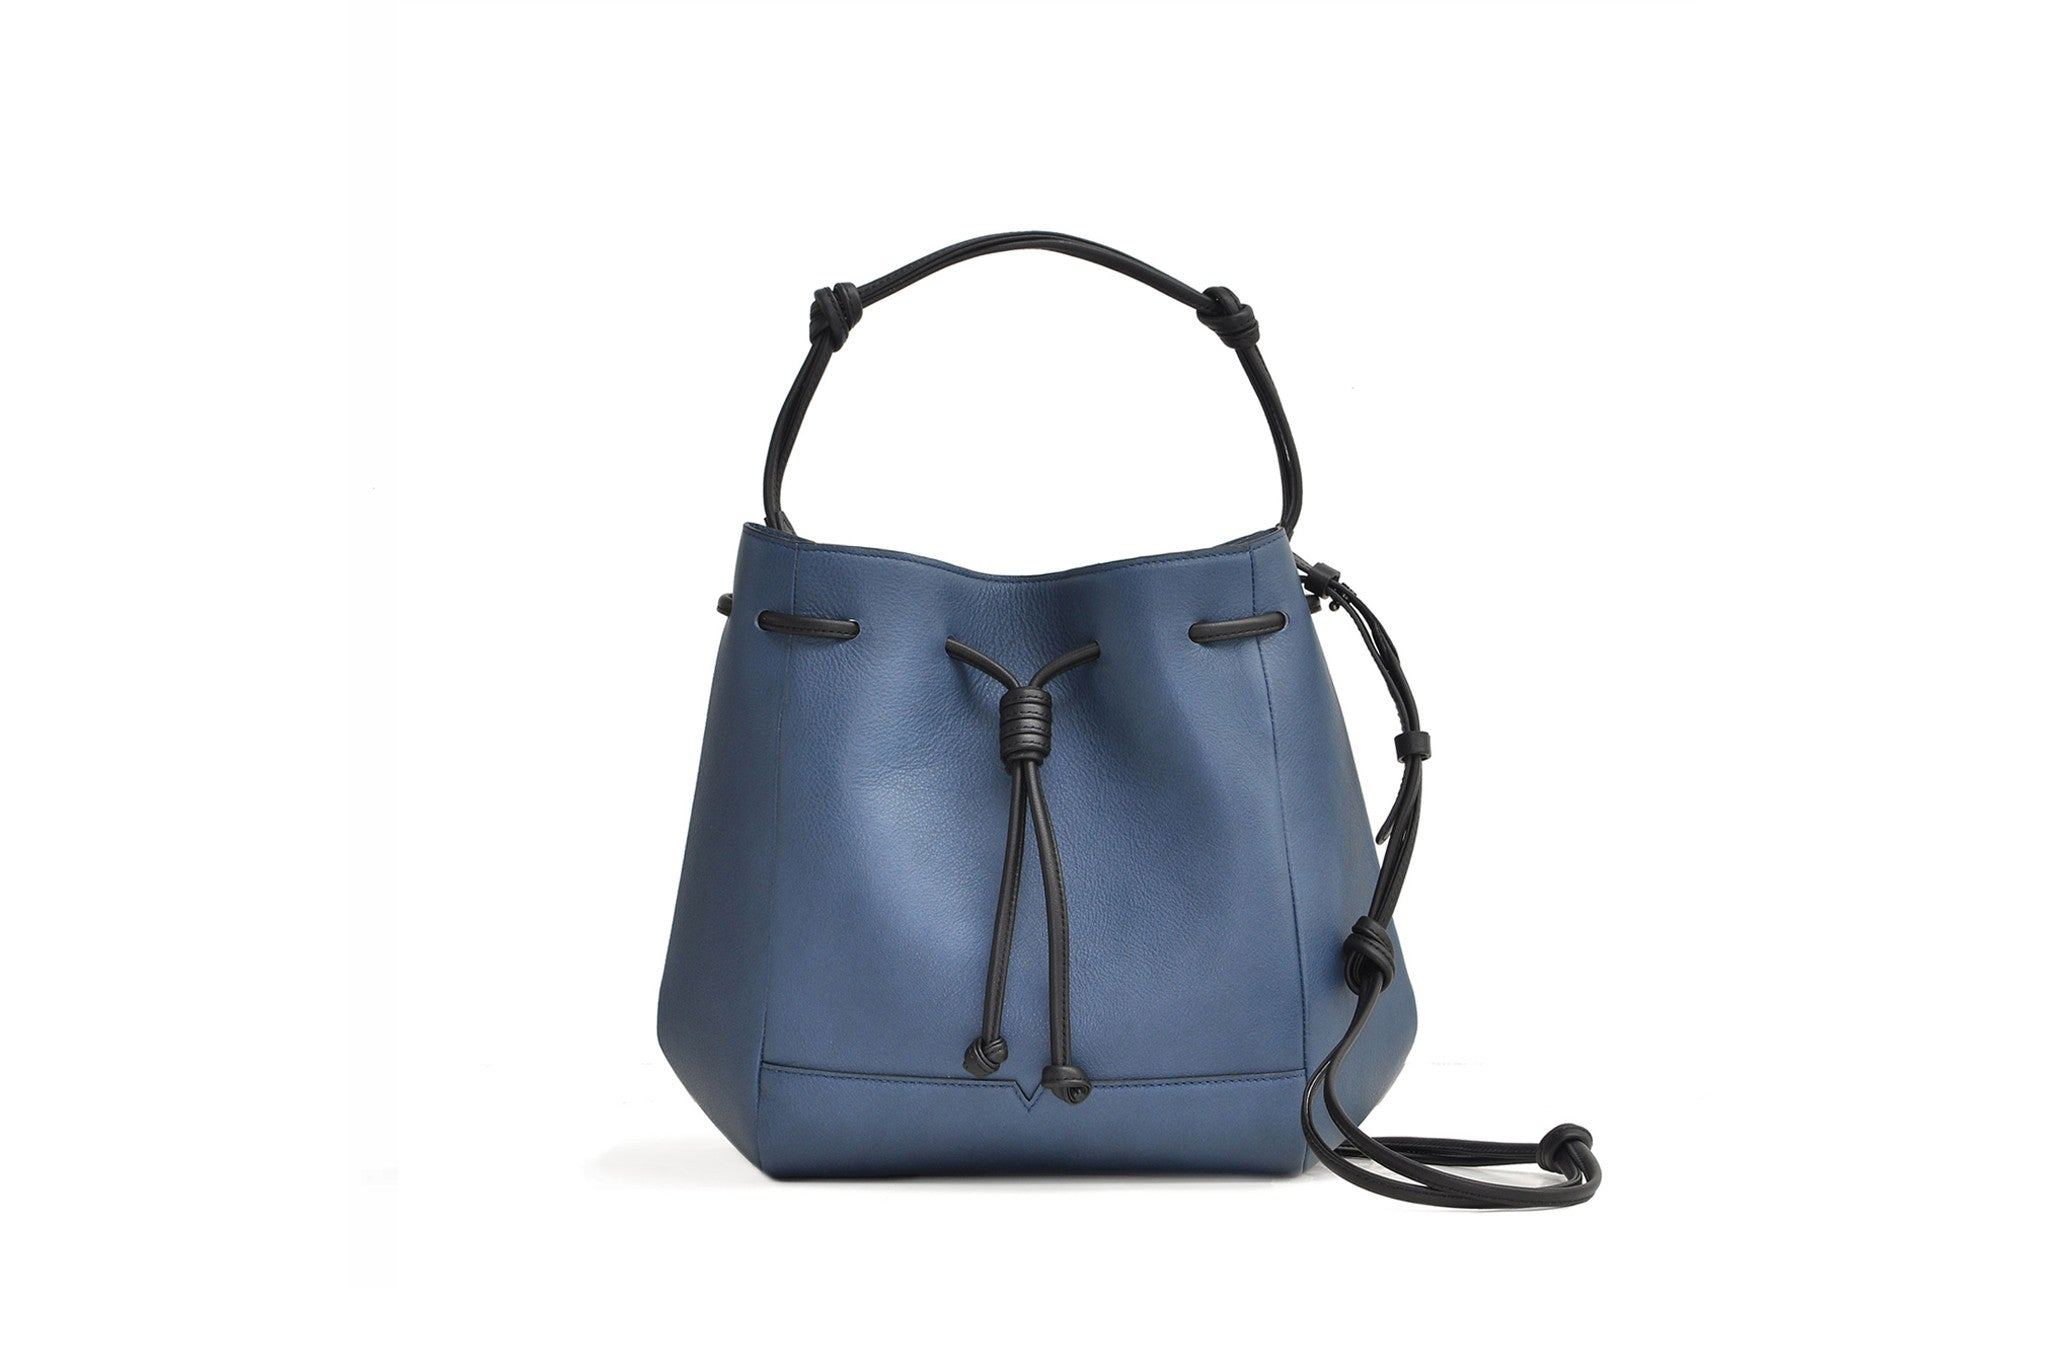 The Bucket Crossbody in Technik-Leather in Denim and Black